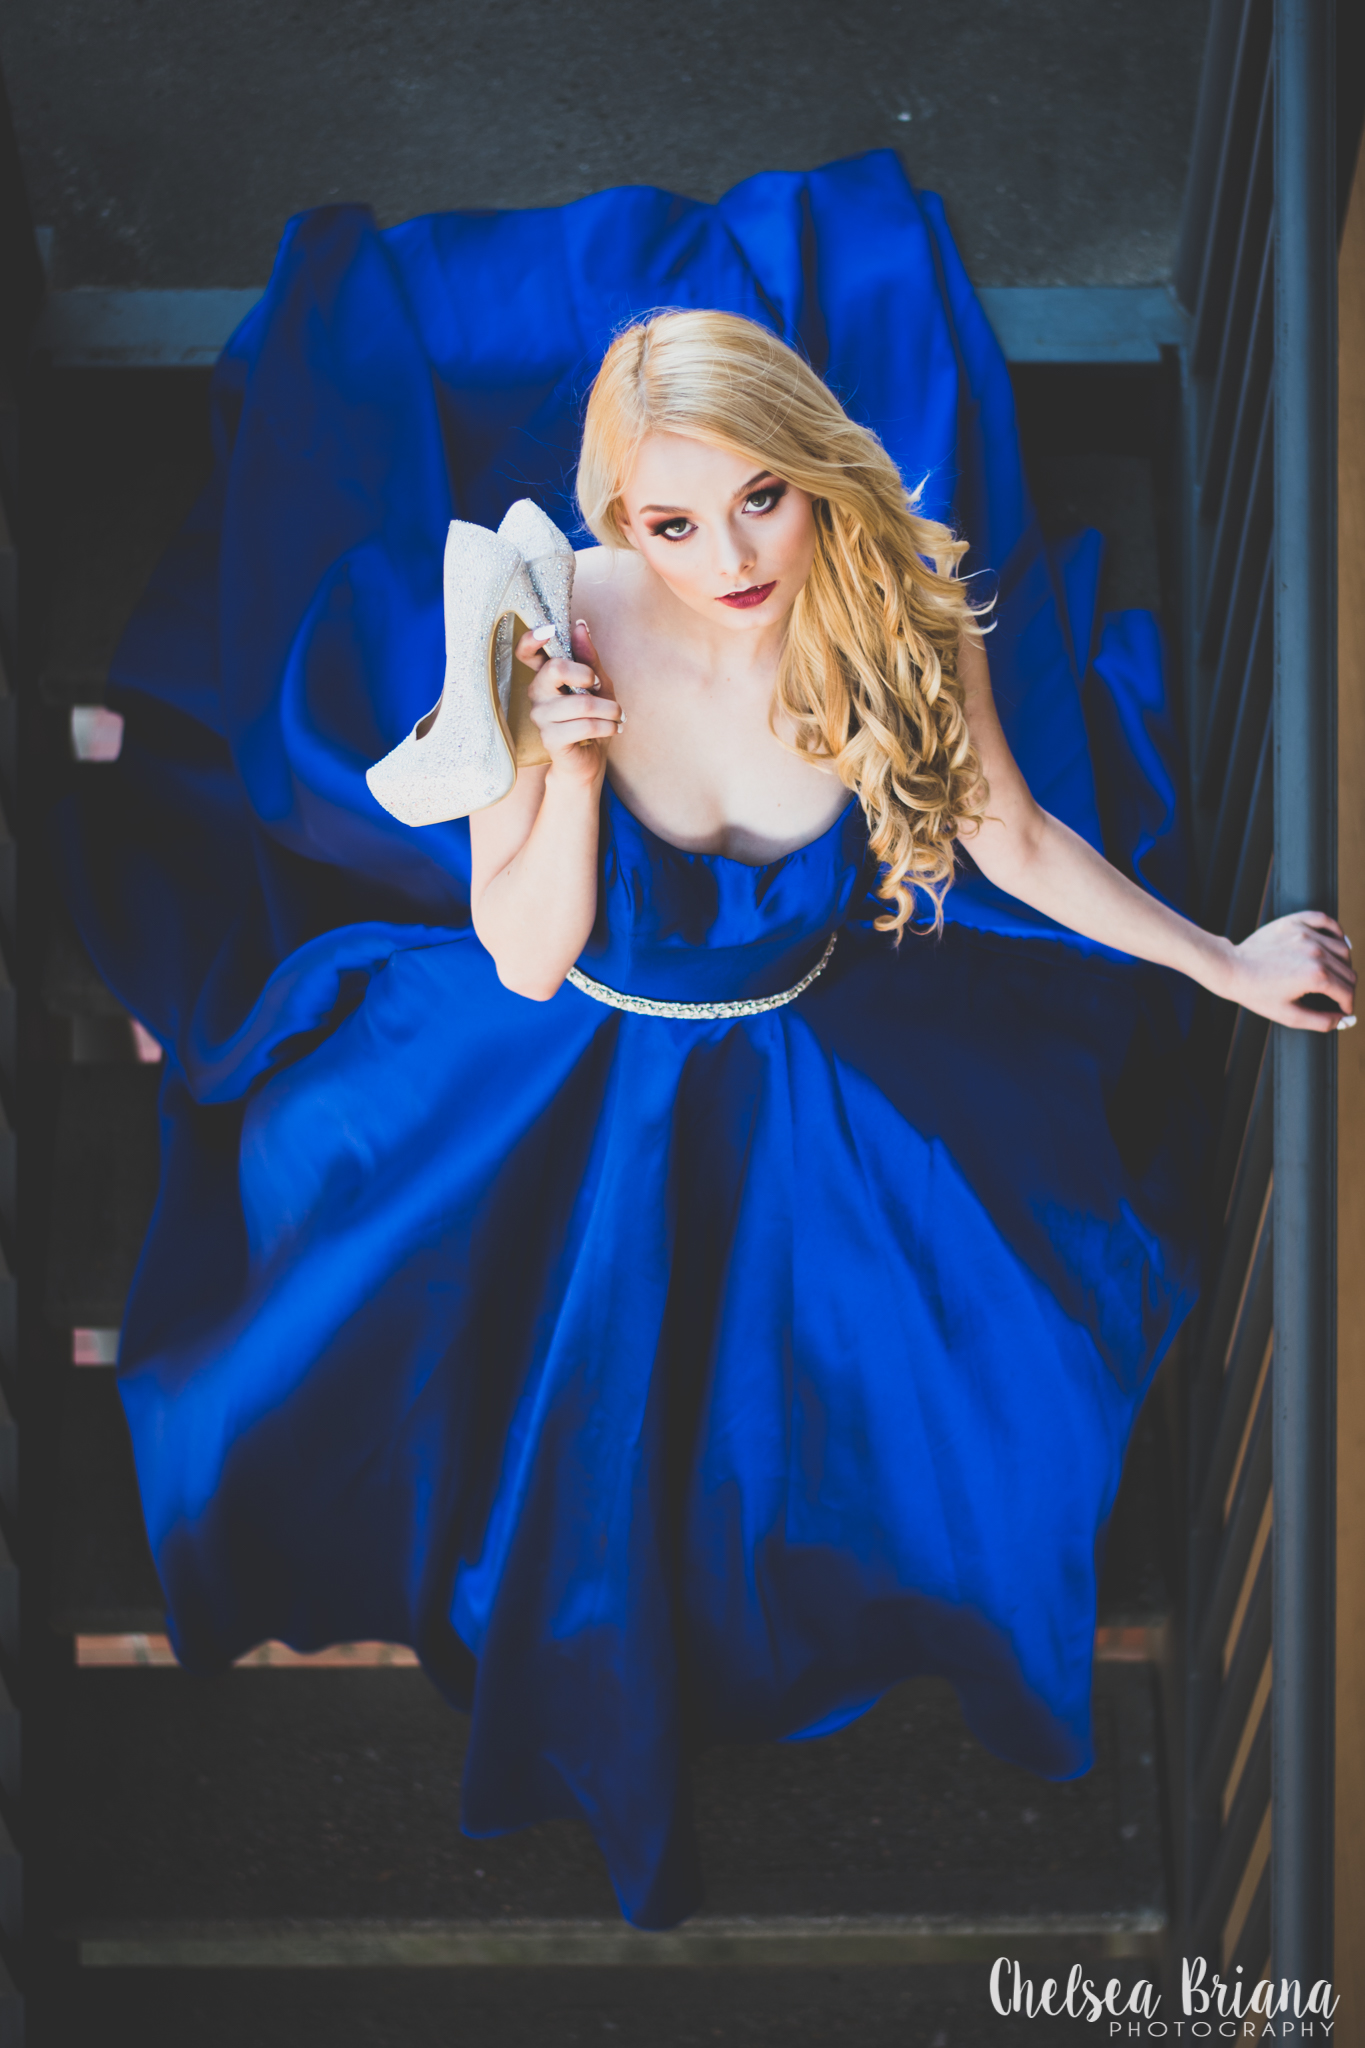 model-wearing-blue-gown-on-staircase